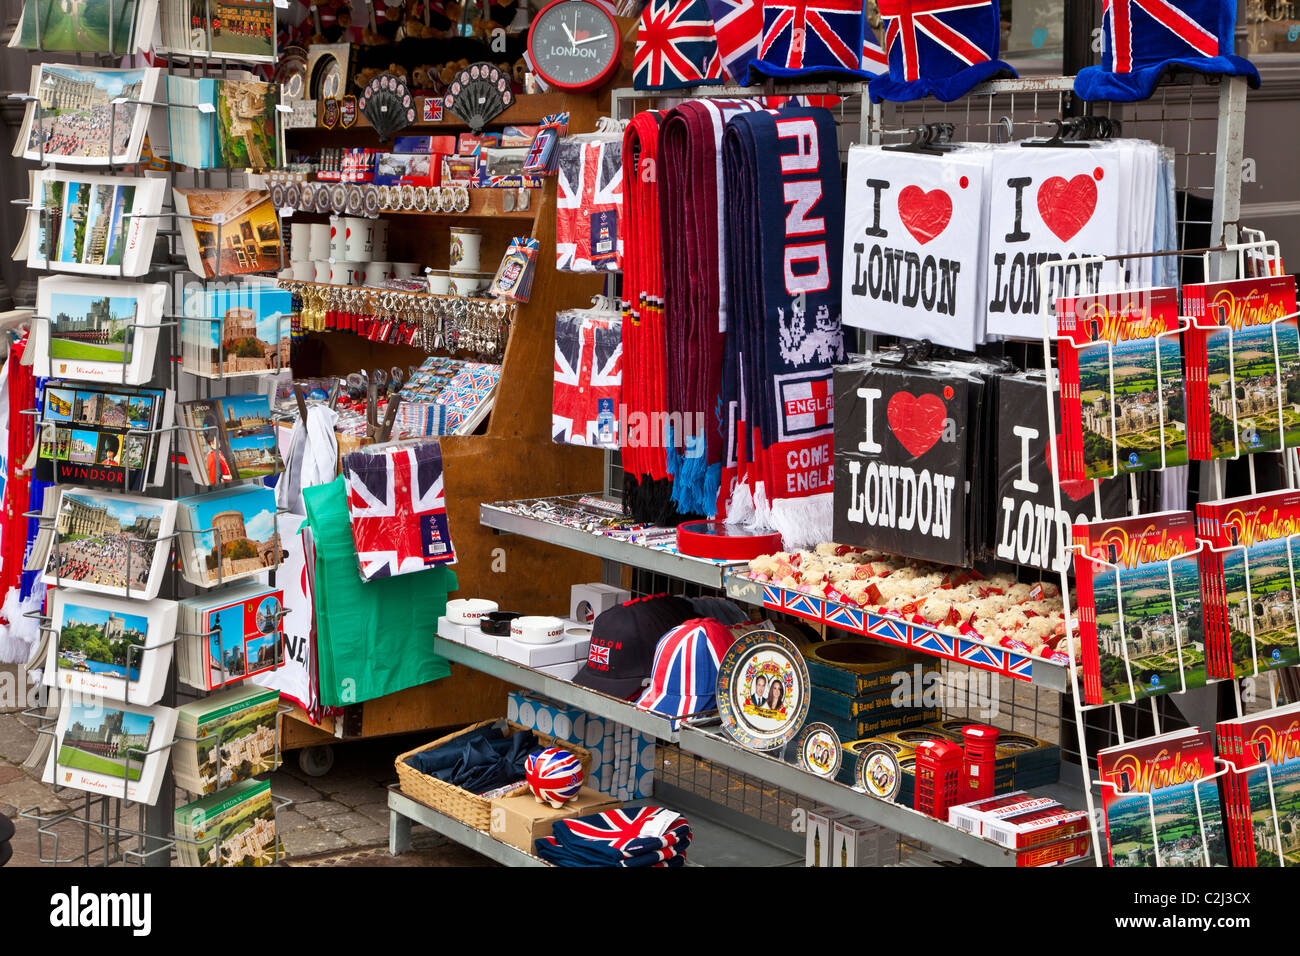 Display of souvenirs,memorabilia and gifts of England and London on a stall in Windsor, Berkshire, England, UK - Stock Image